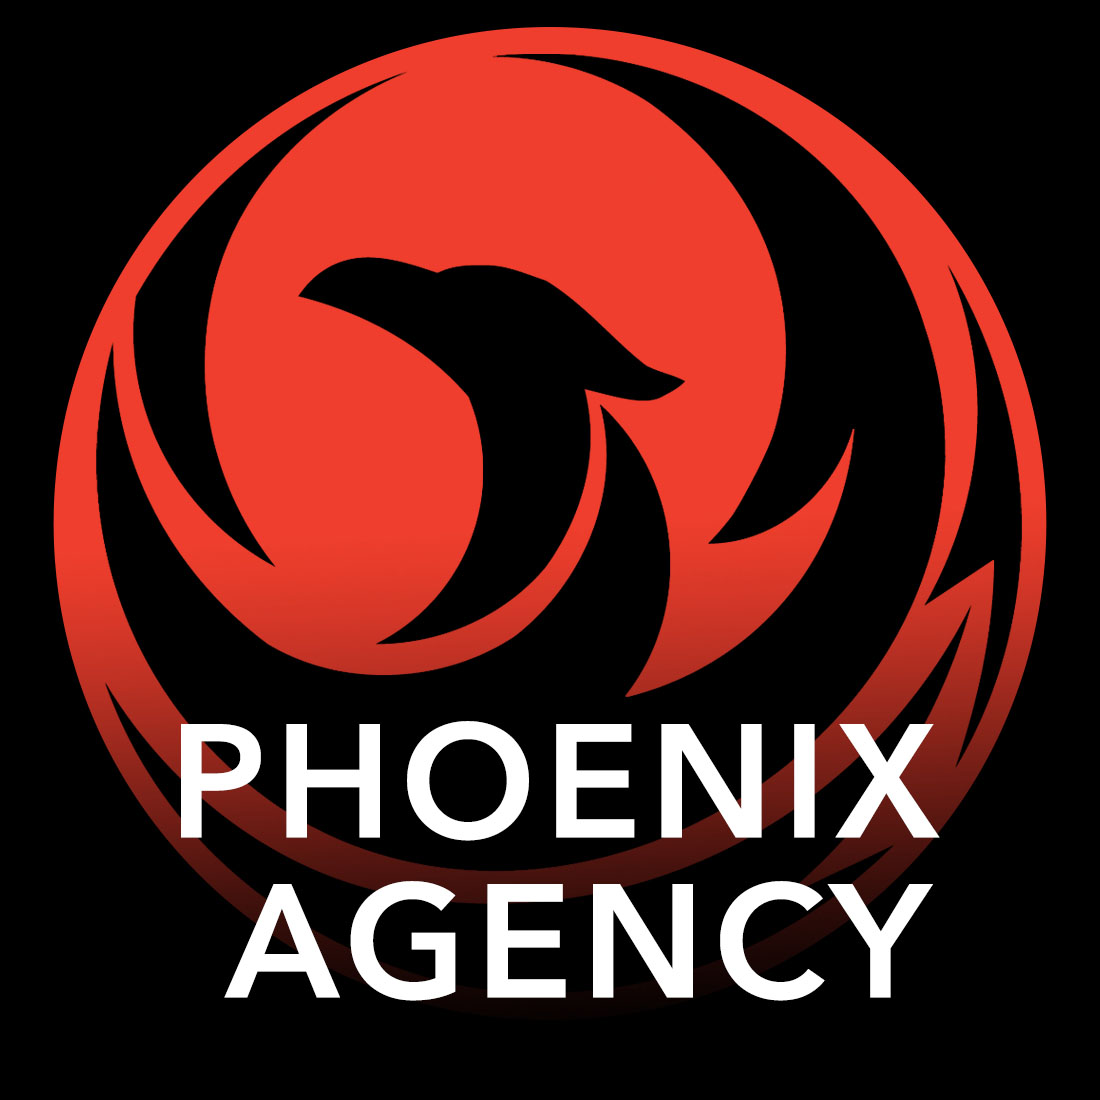 The Phoenix – and why I chose it